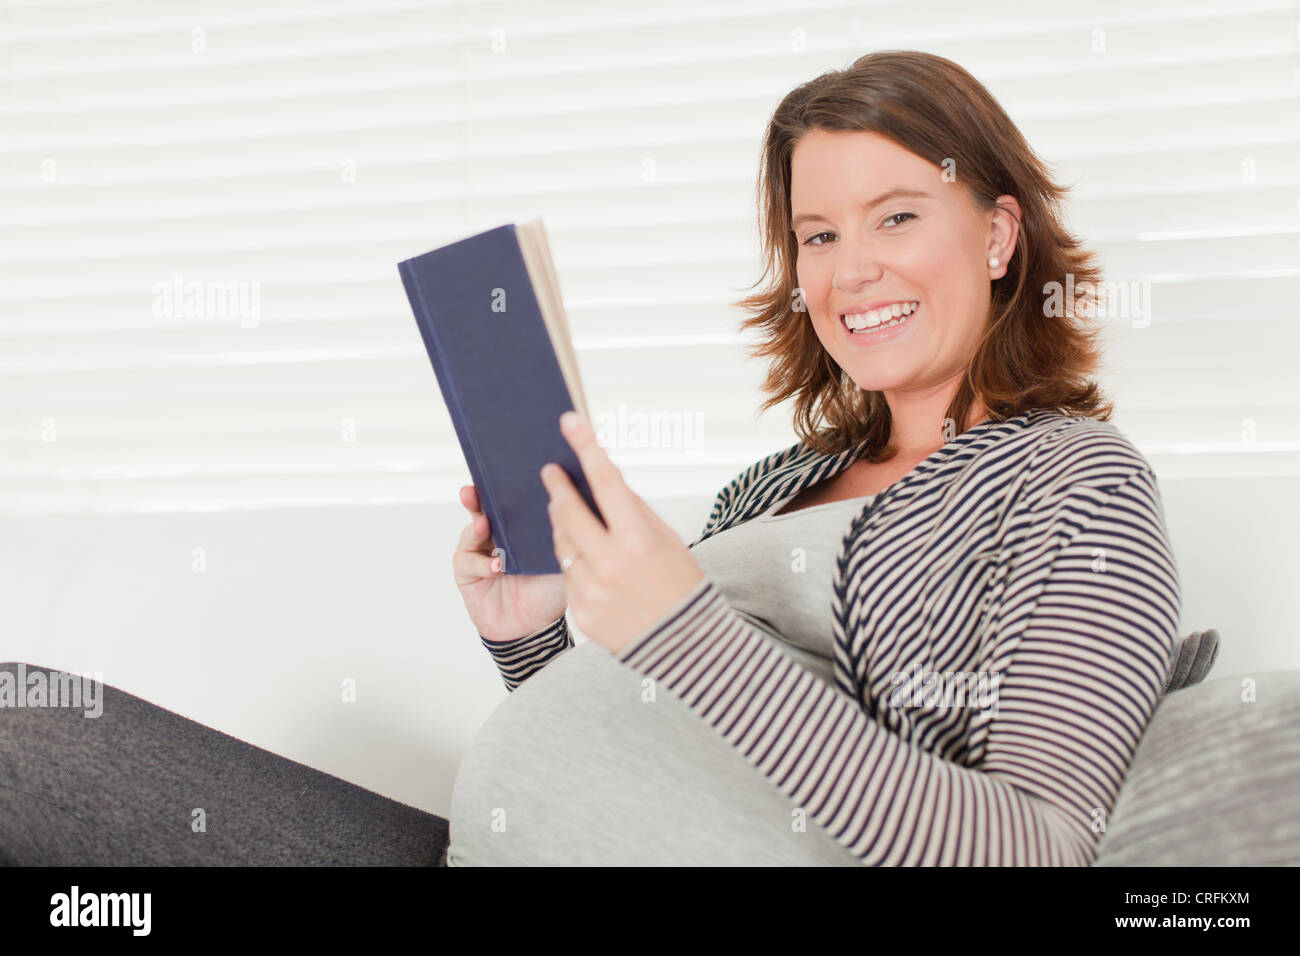 Pregnant woman reading book on sofa - Stock Image